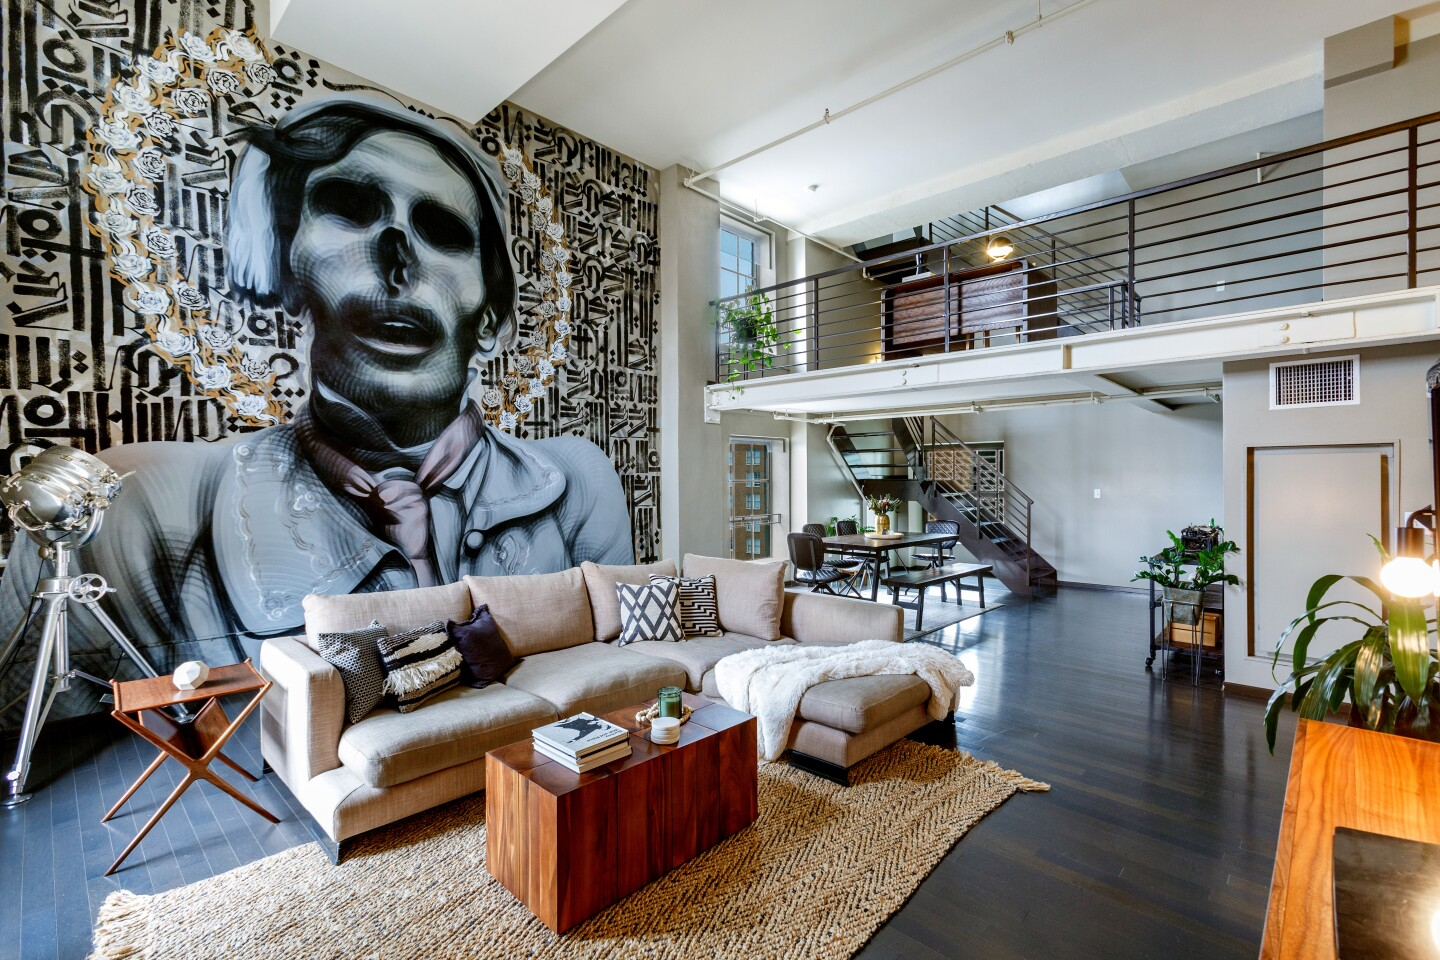 Located within the Broadway Hollywood Building, which was once a department store, the loft-style condominium blends industrial notes with a range of modern updates. High ceilings and gallery walls in the main living area created the perfect canvas for the mural by contemporary street artist Retna. The 2,510-square-foot unit features a chrome-clad chef's kitchen, lofted living space and a private terrace.